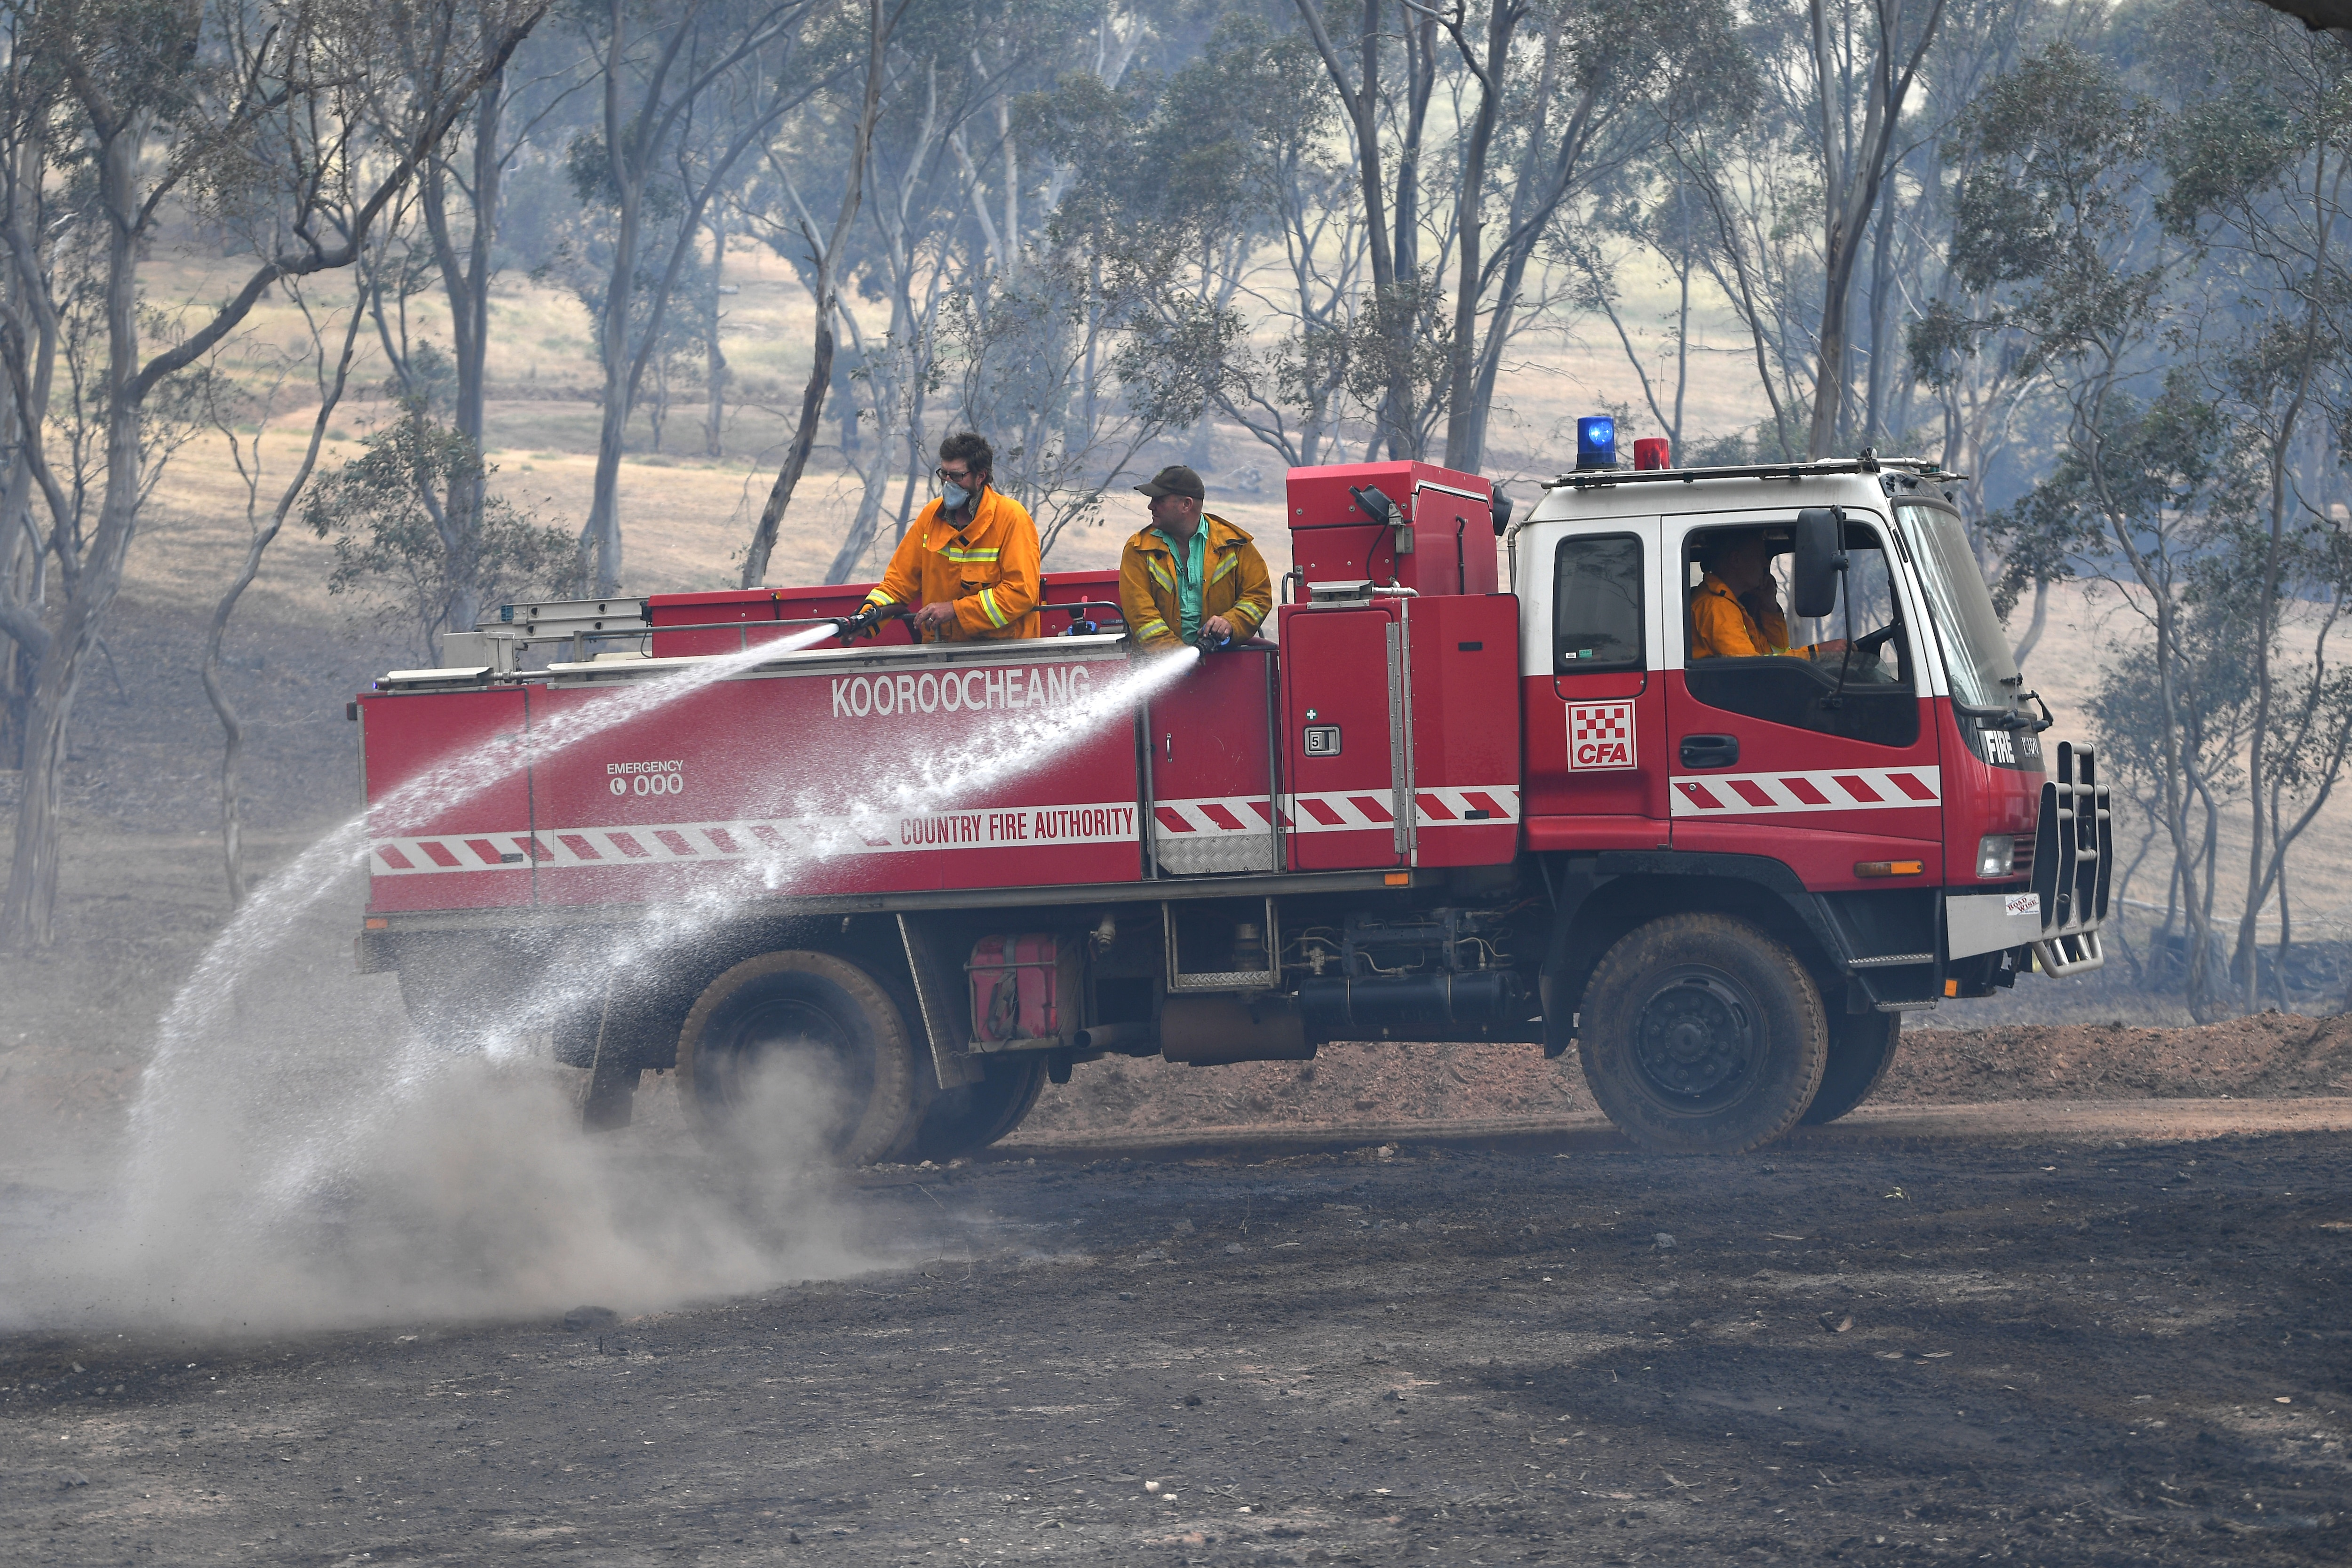 CFA firefighters are seen spraying water onto smouldering bushland at Mount Glasgow, Victoria.